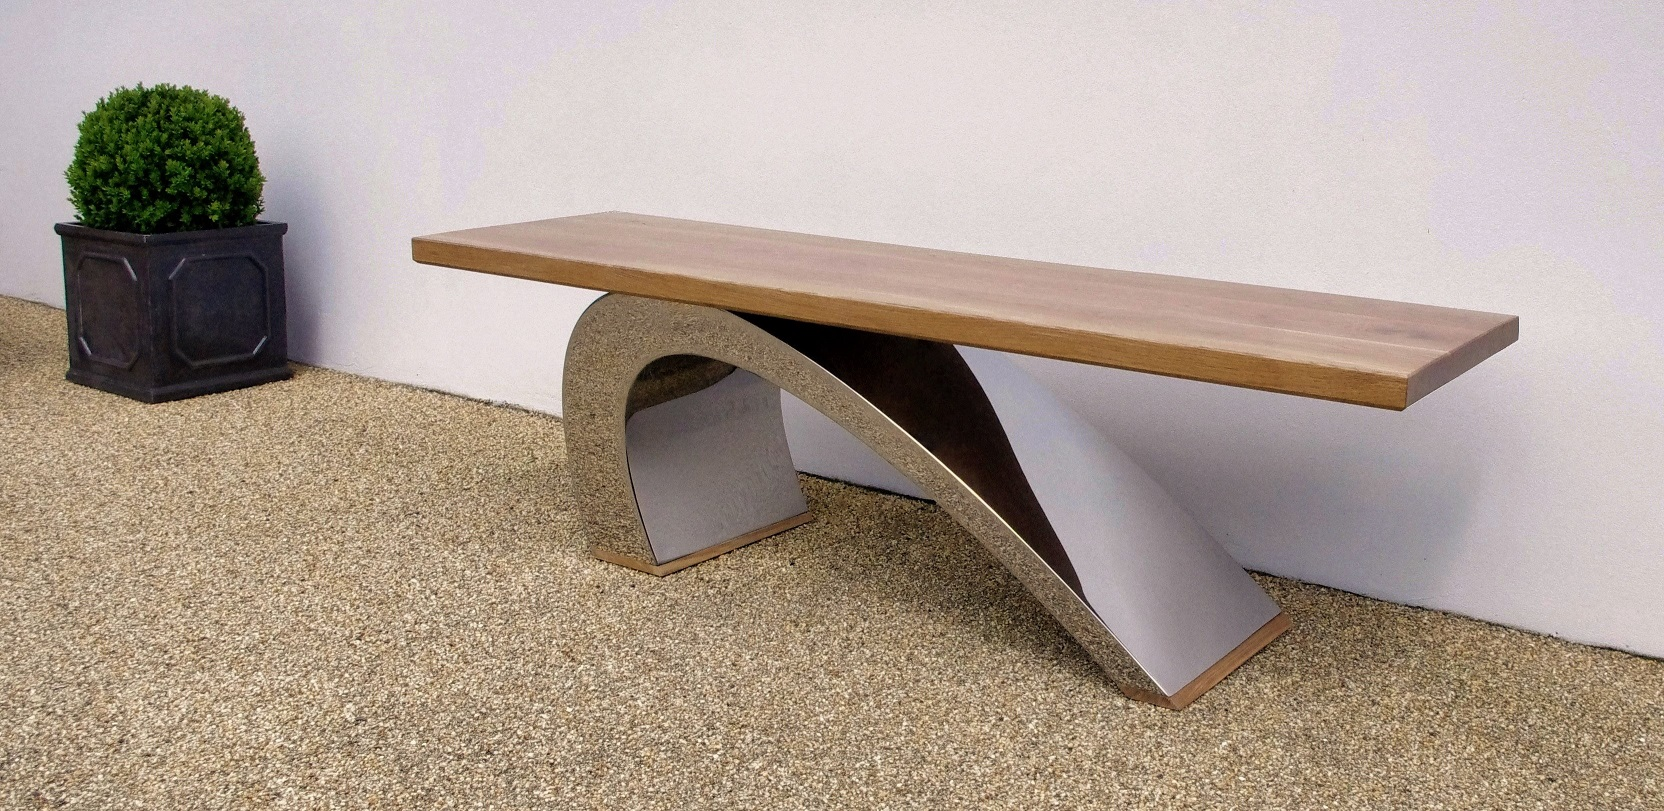 Handmade Modern Furniture Handmade Contemporary Furniture  Luxury Designer  Chris Bose